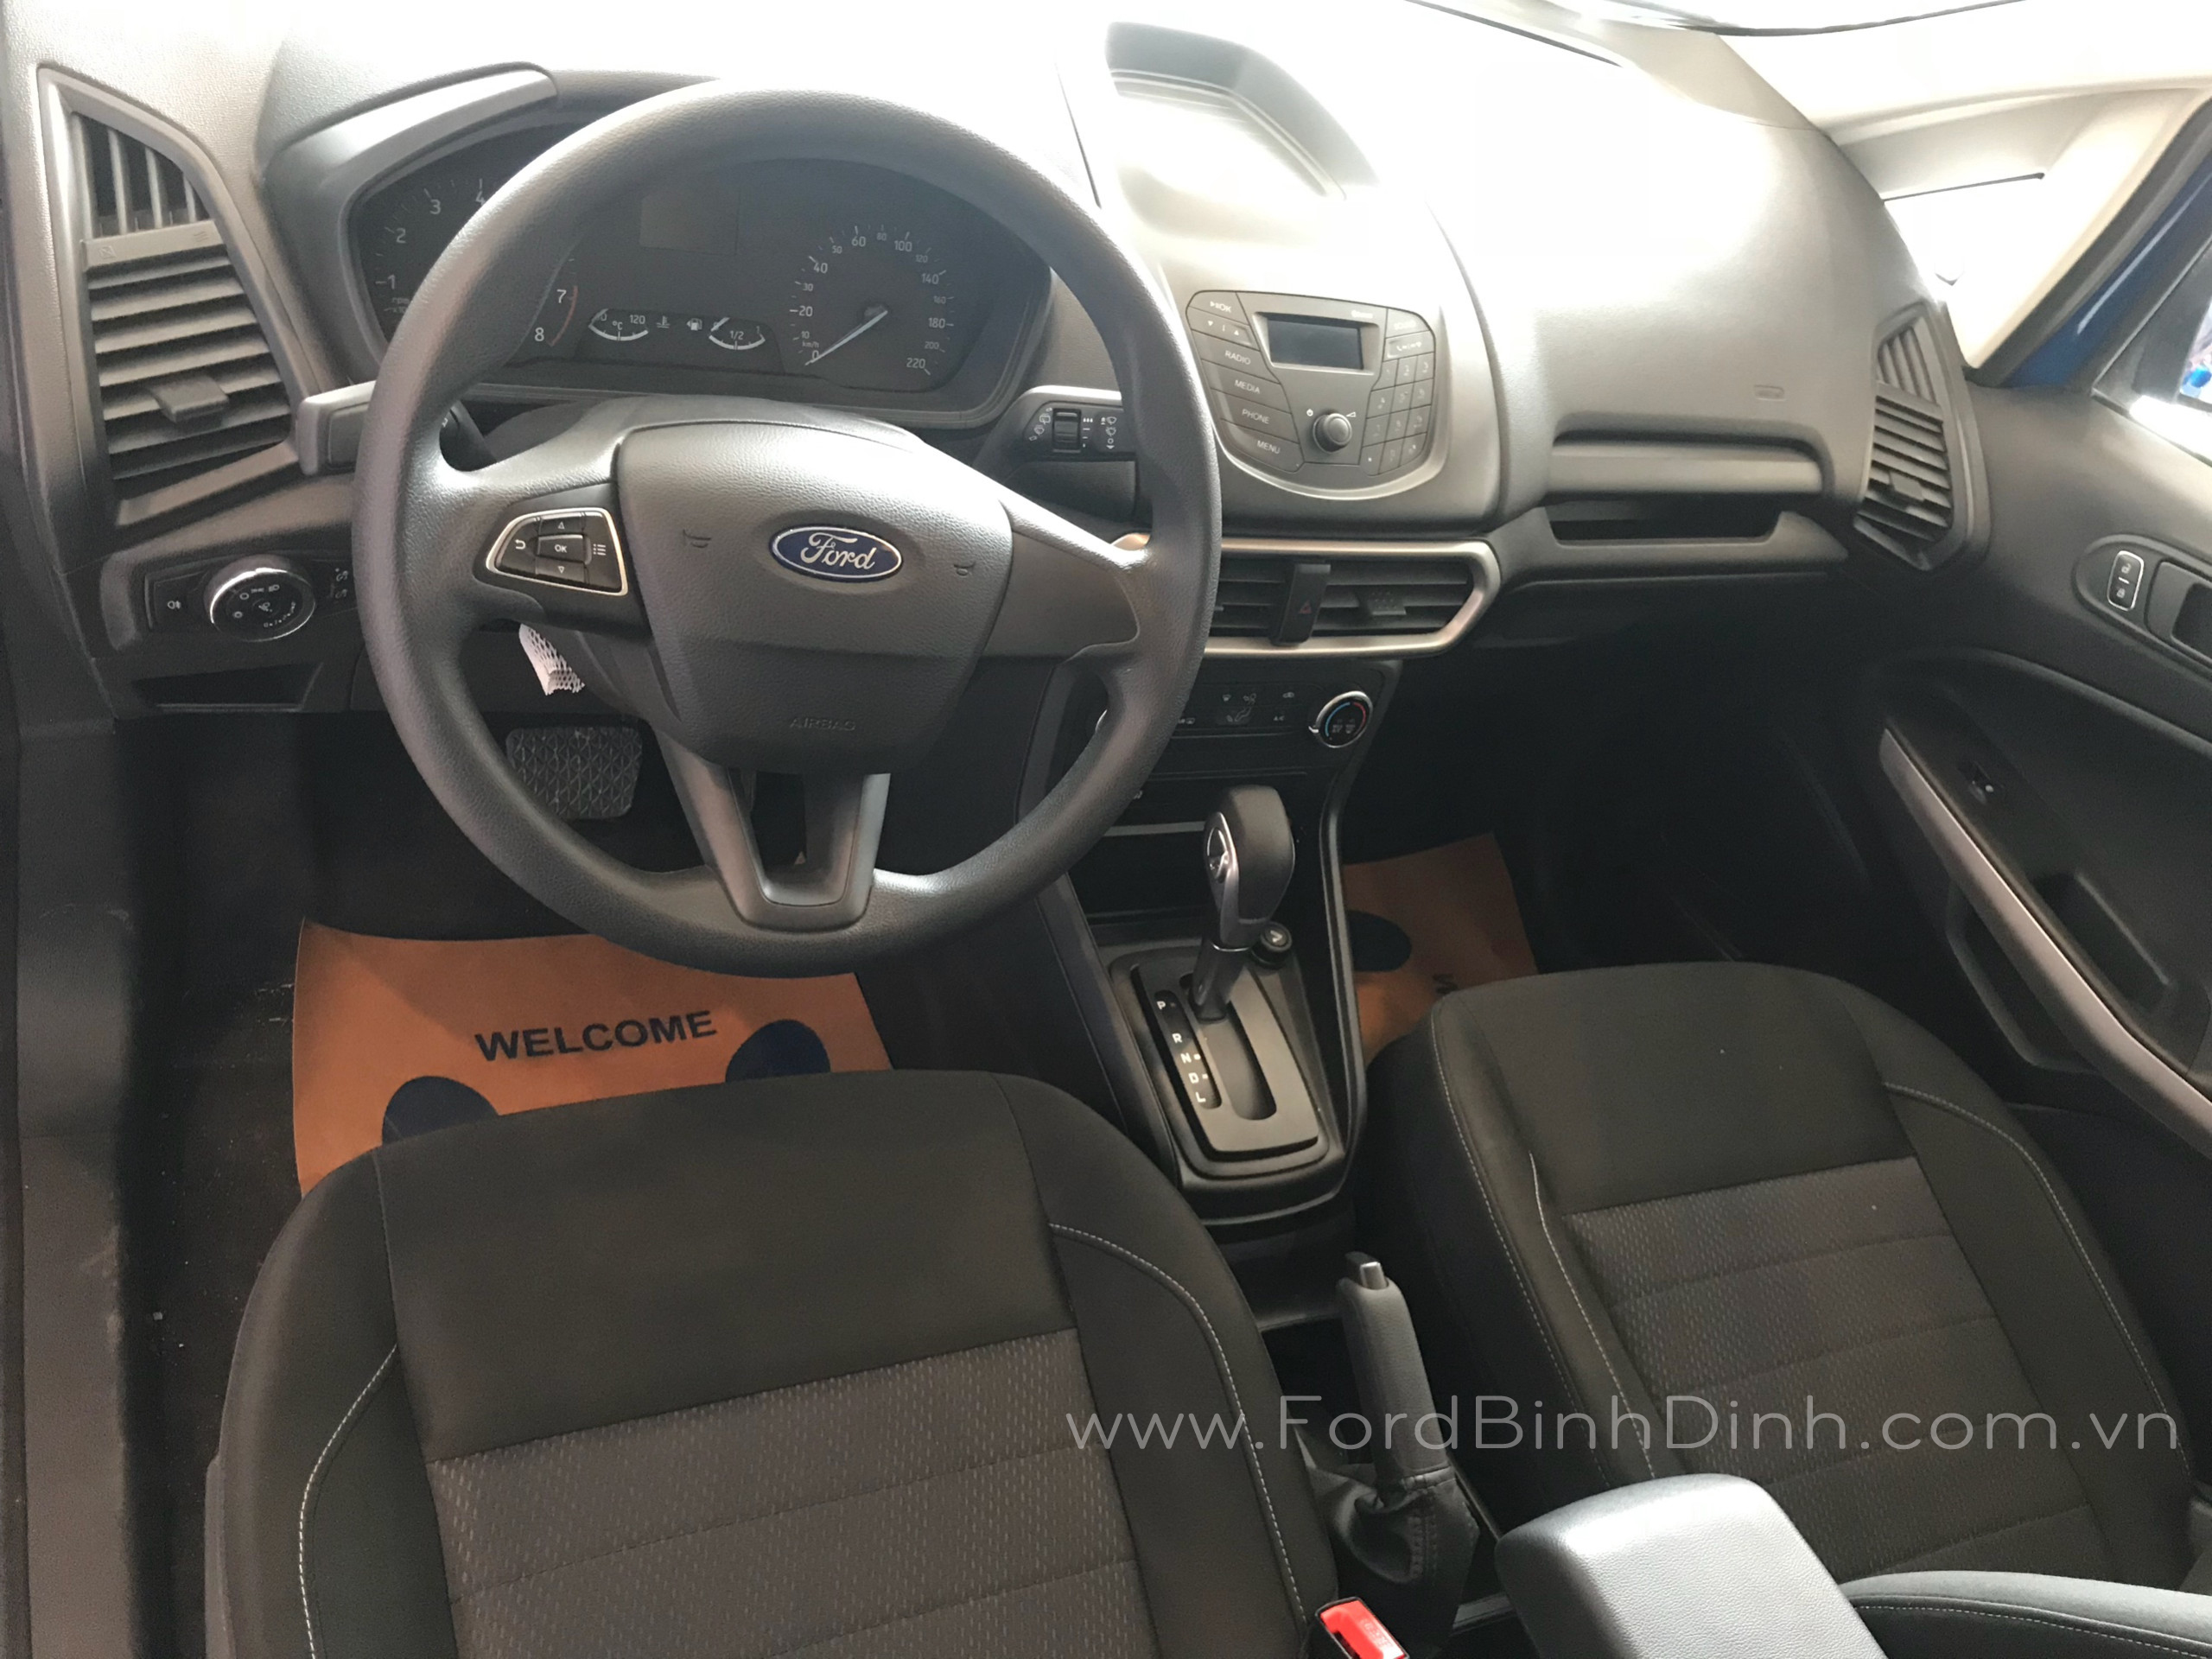 ecosport-2018-trend-at8-ford-binh-dinh-com-vn